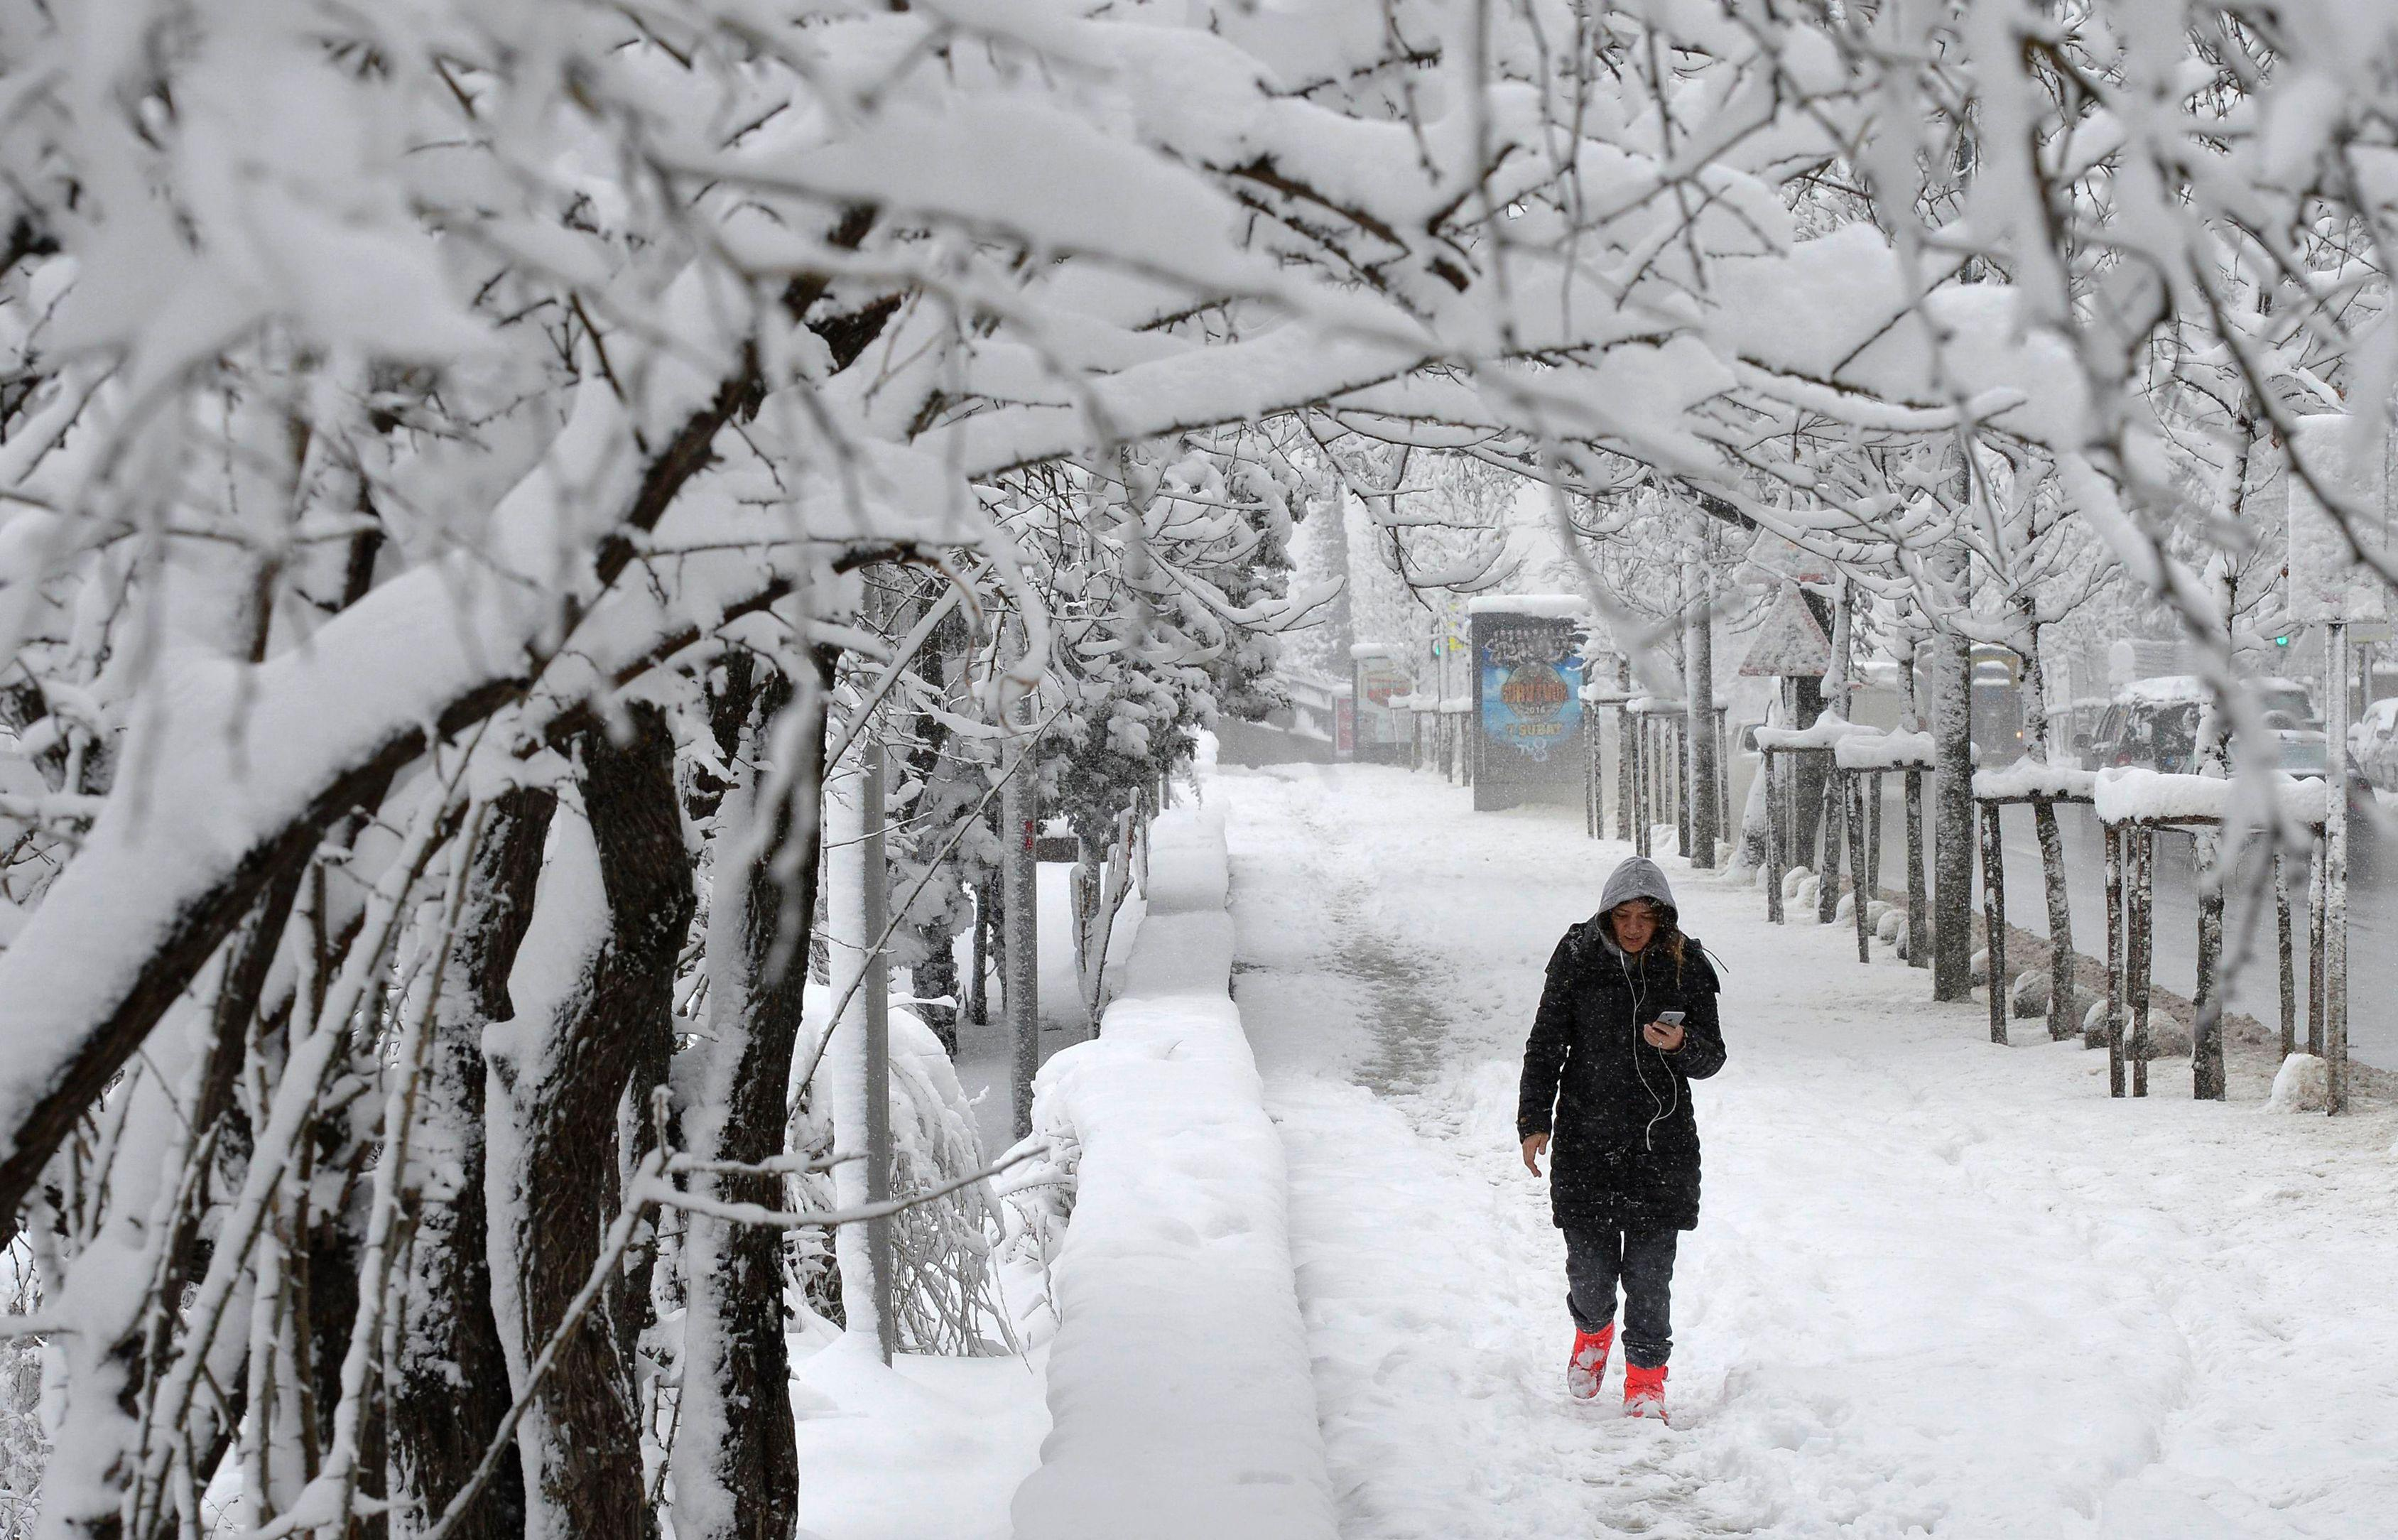 A woman talks on the phone as she walks under the snow in Ankara on February 6, 2016. / AFP / ADEM ALTAN        (Photo credit should read ADEM ALTAN/AFP/Getty Images)